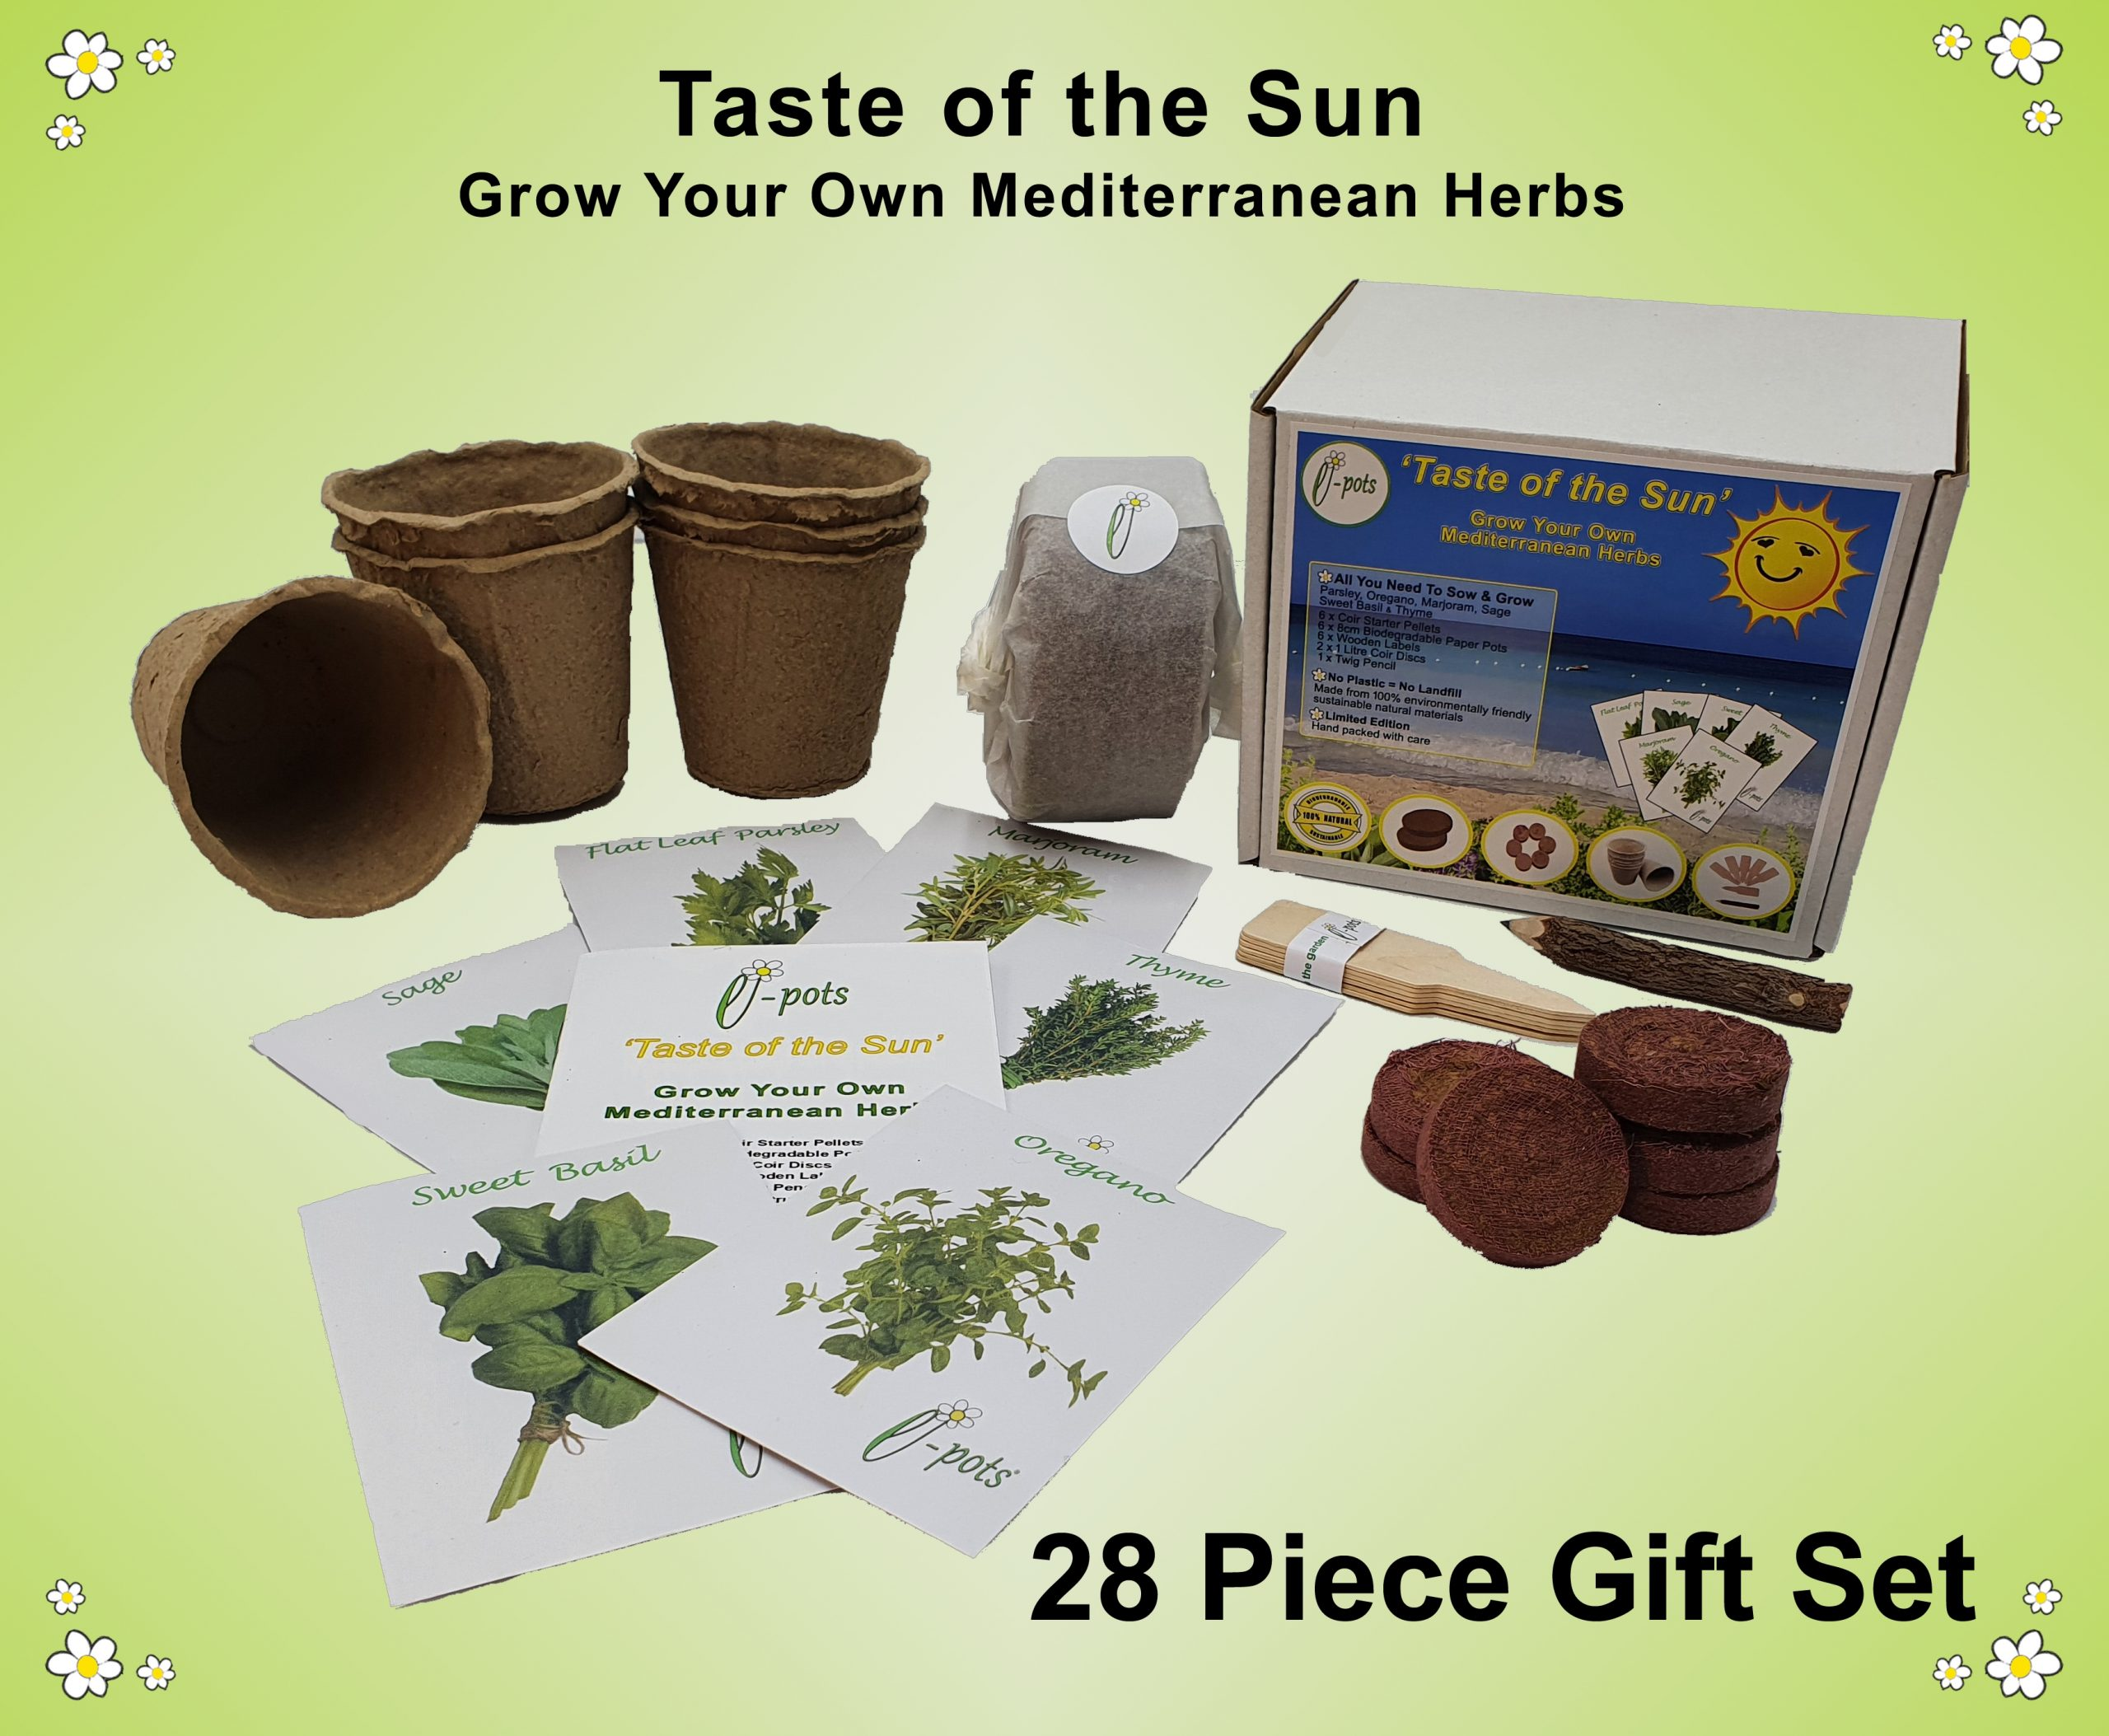 e-pots Taste of the Sun Grow Your Own Mediterranean Herbs contents